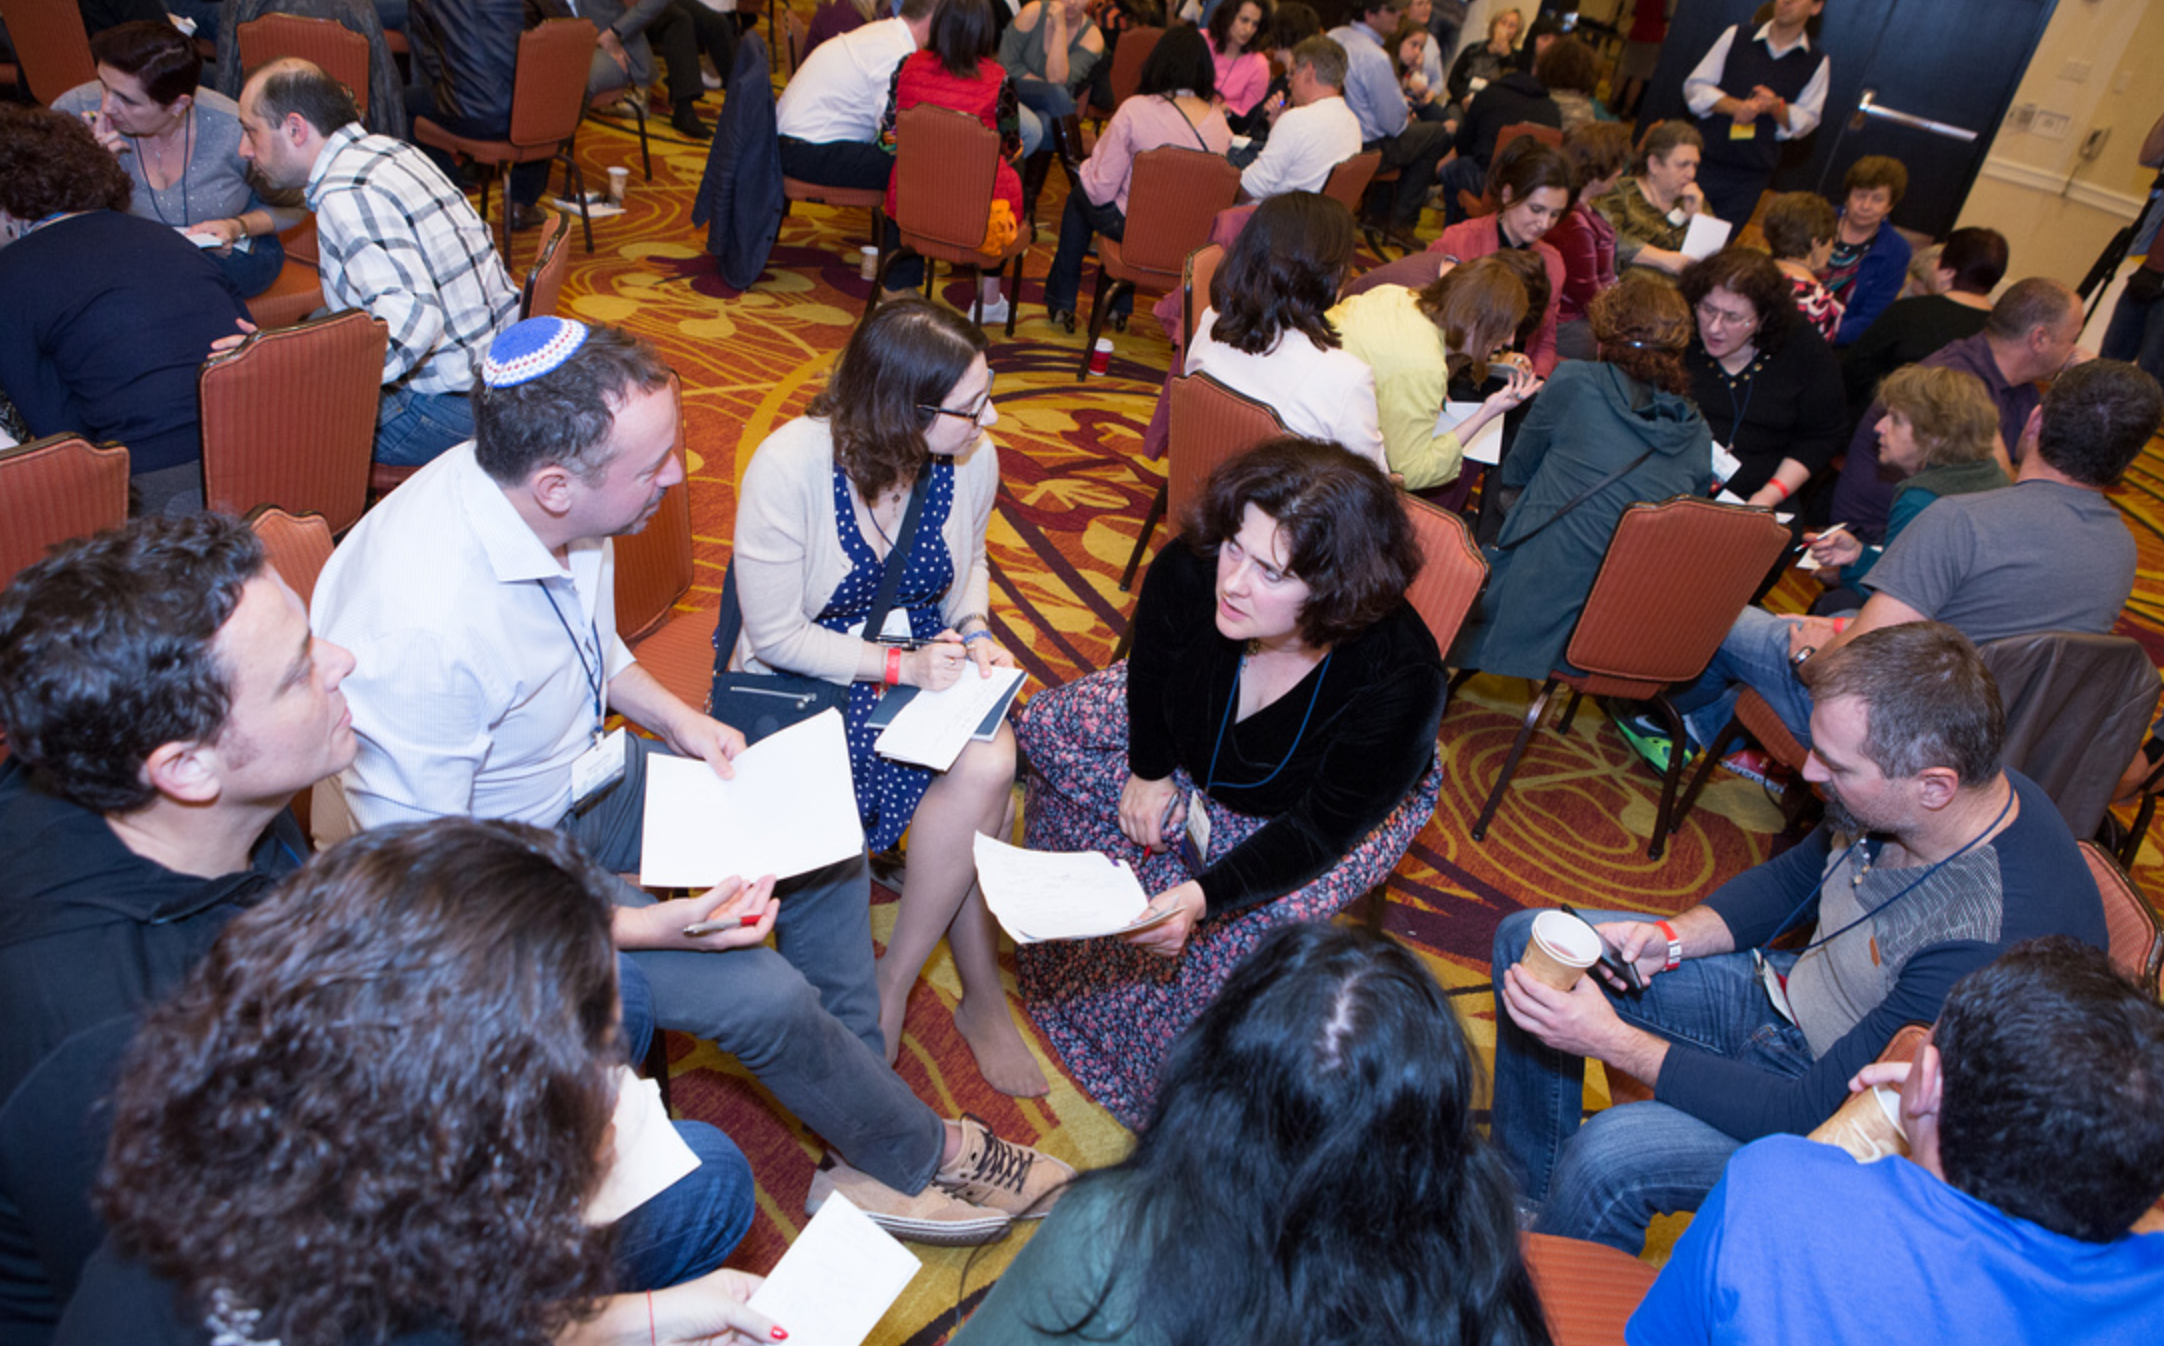 Jews from the former Soviet Union and their descendants gathered for Limmud FSU in Oakland, Nov. 17-19 (Photo/Kate Fim)